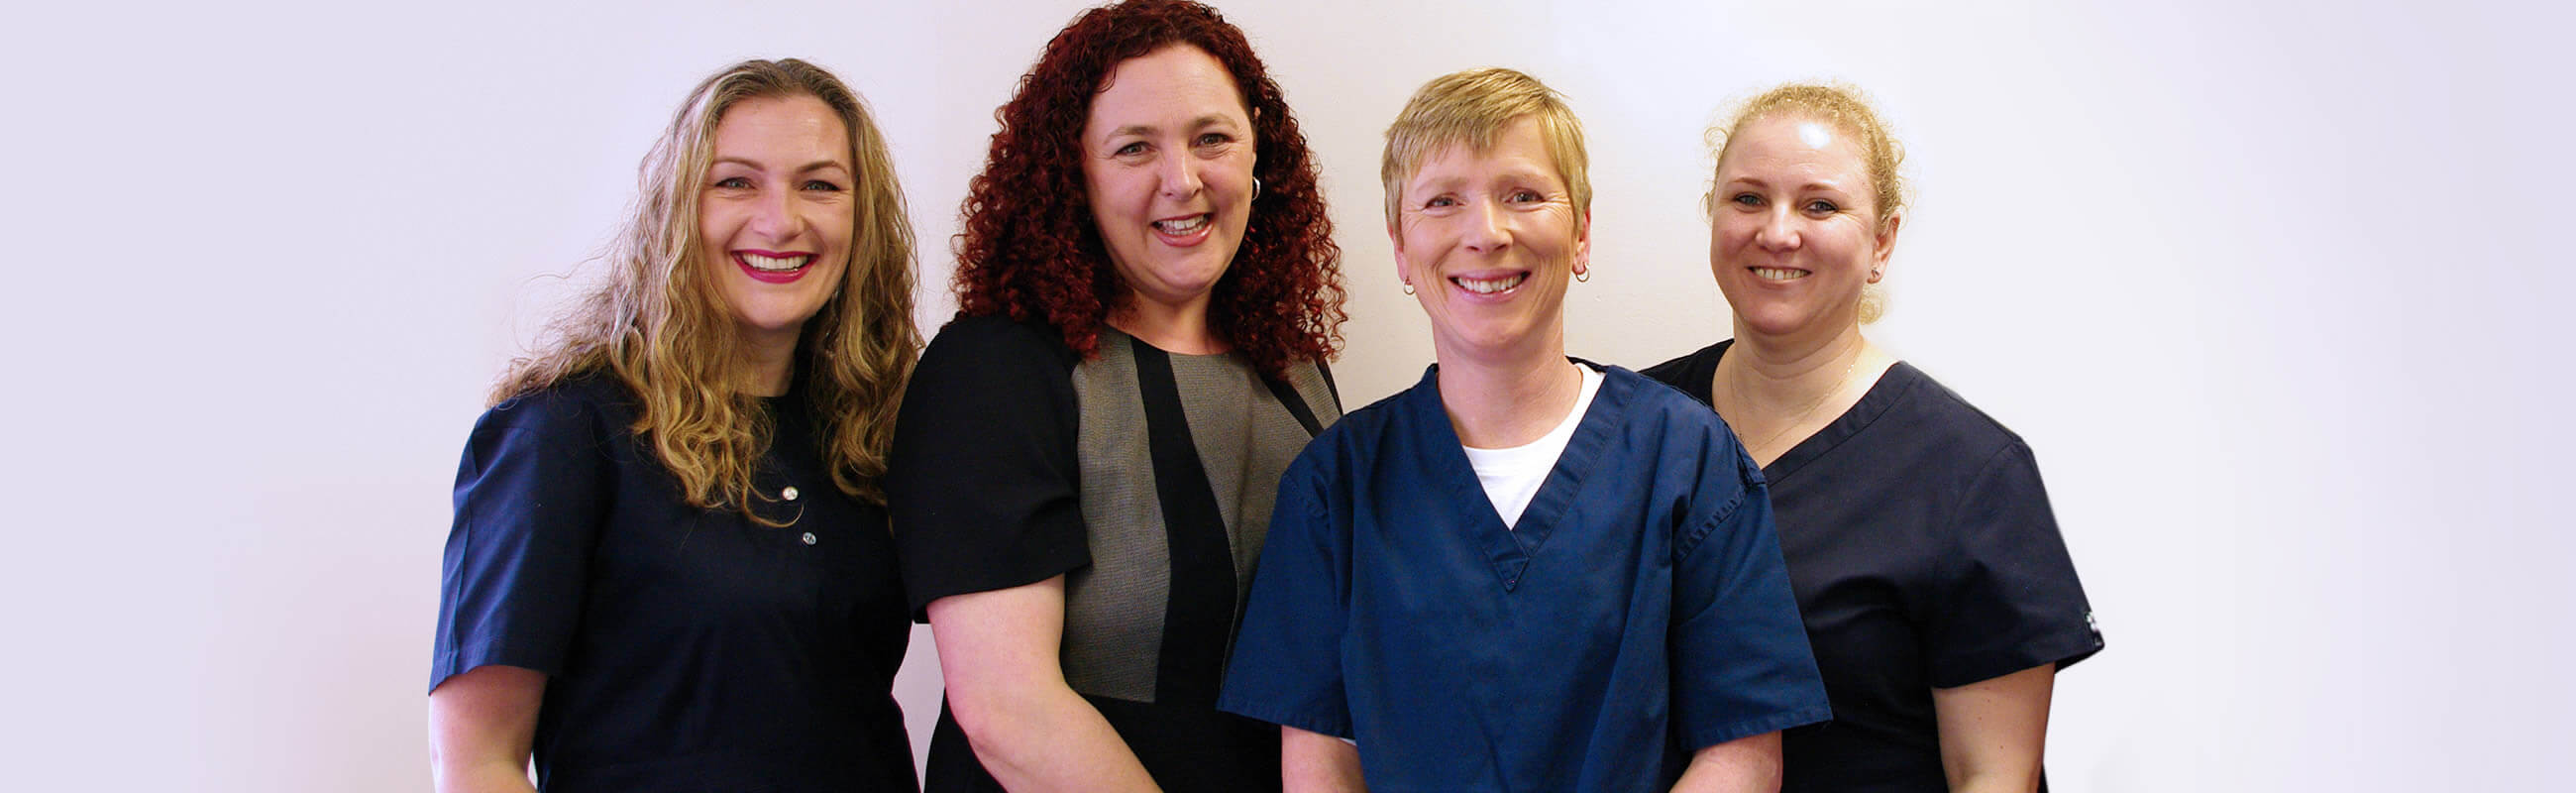 Distinctly Dental Team